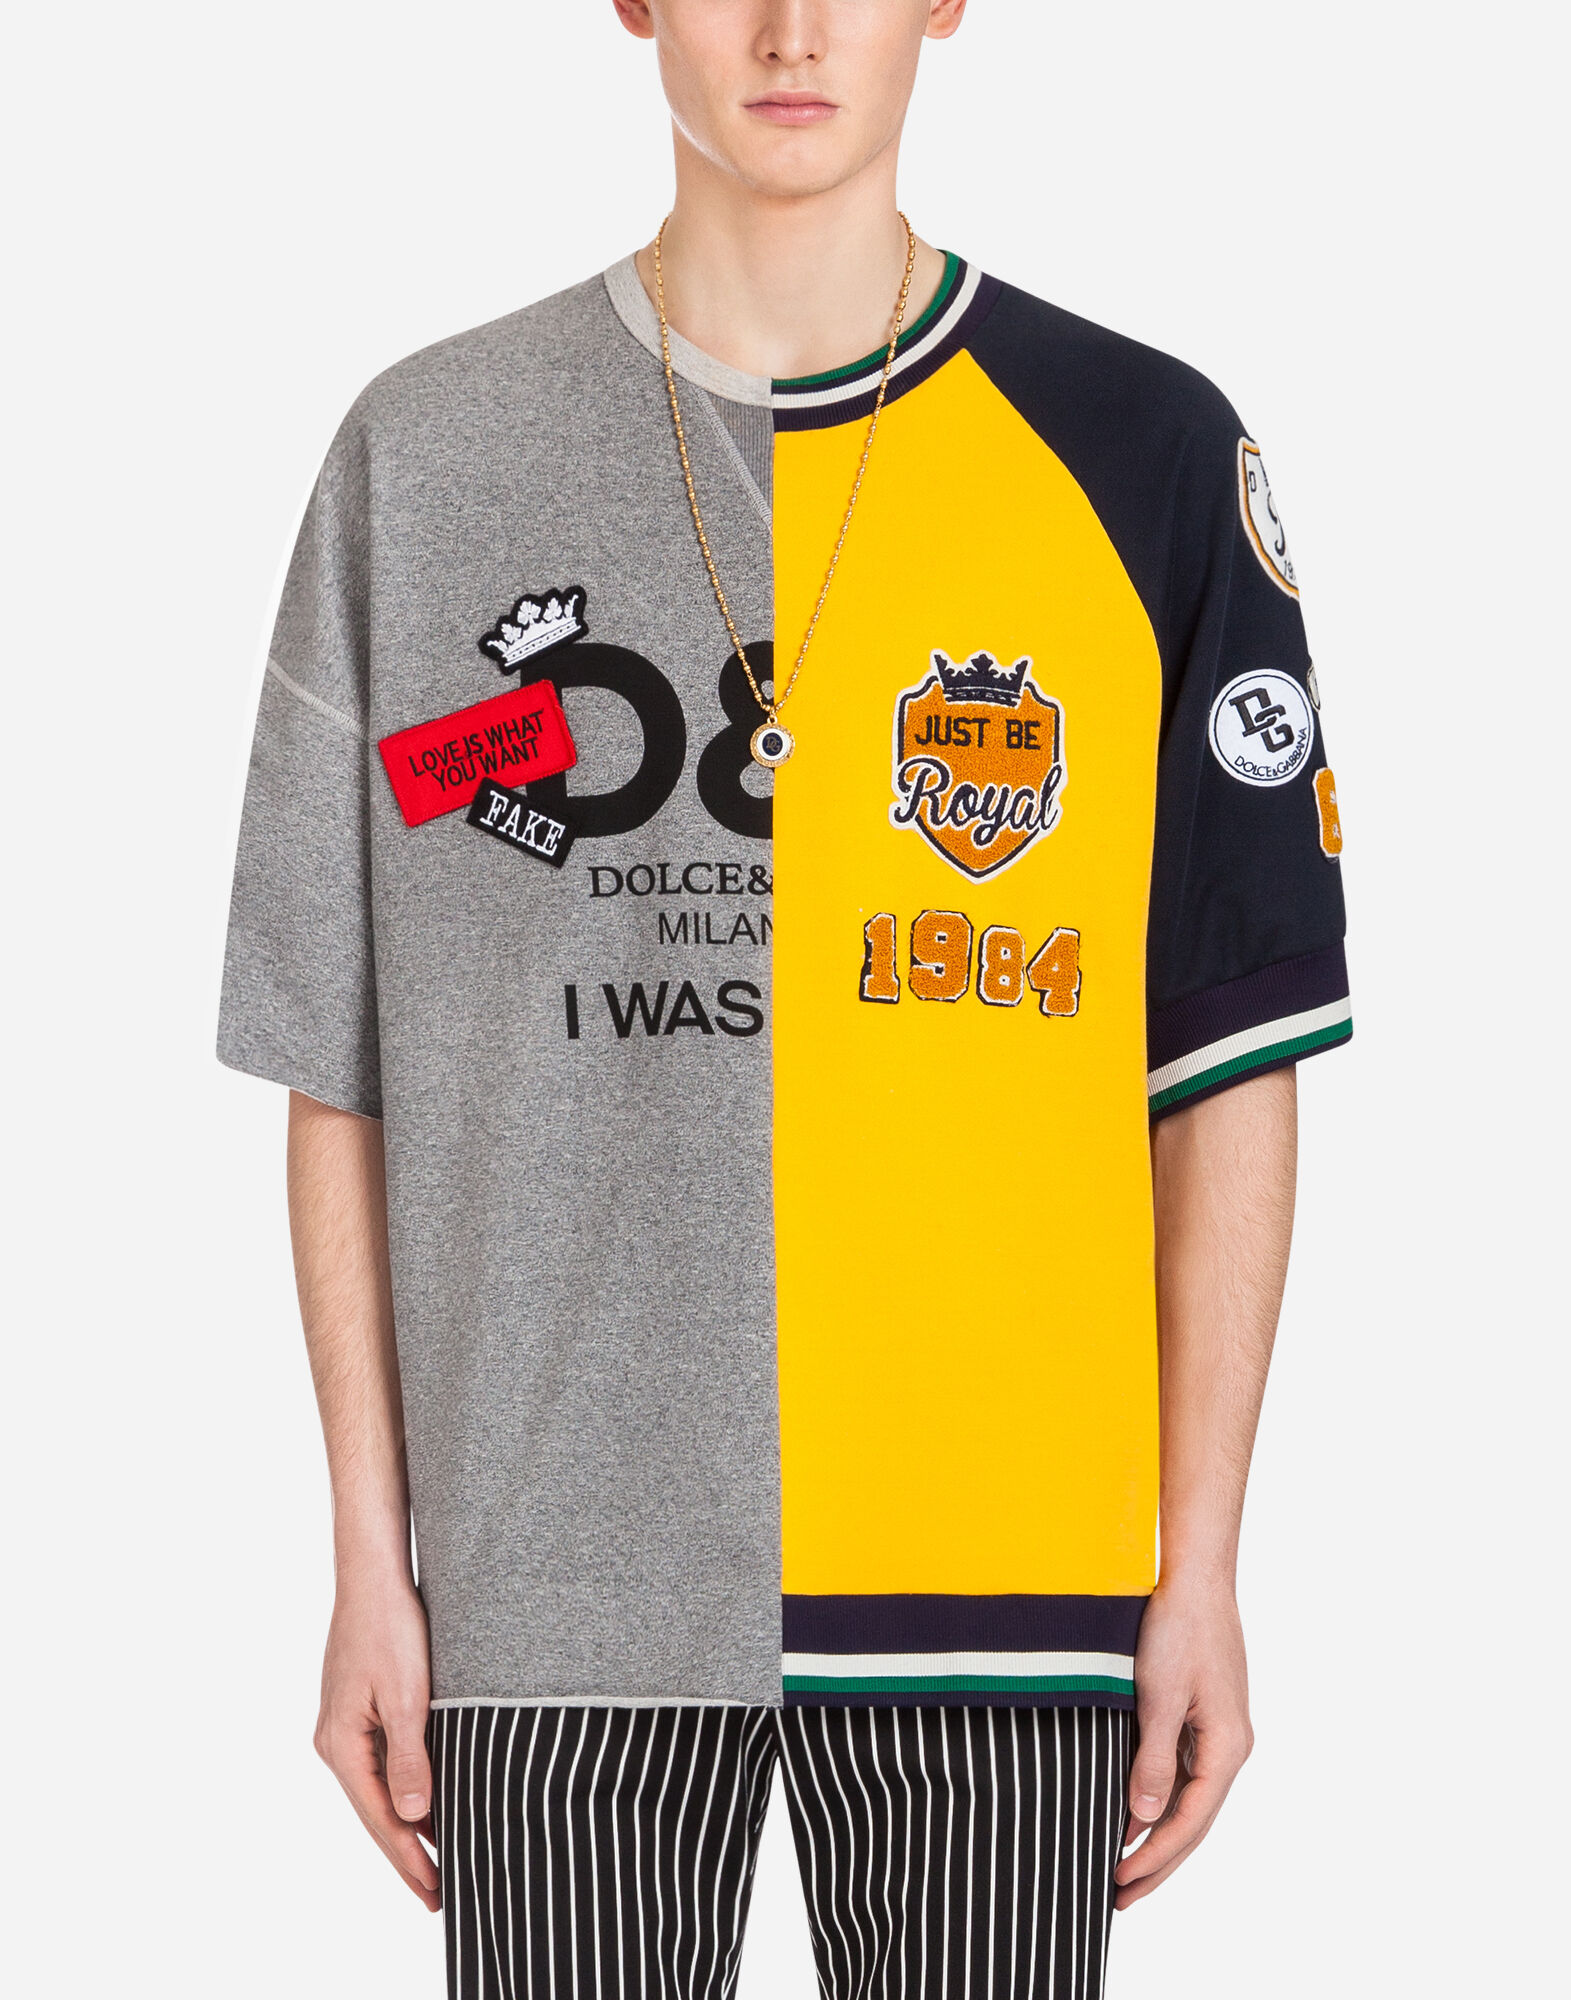 COTTON SWEATSHIRT WITH PATCH from DOLCE & GABBANA